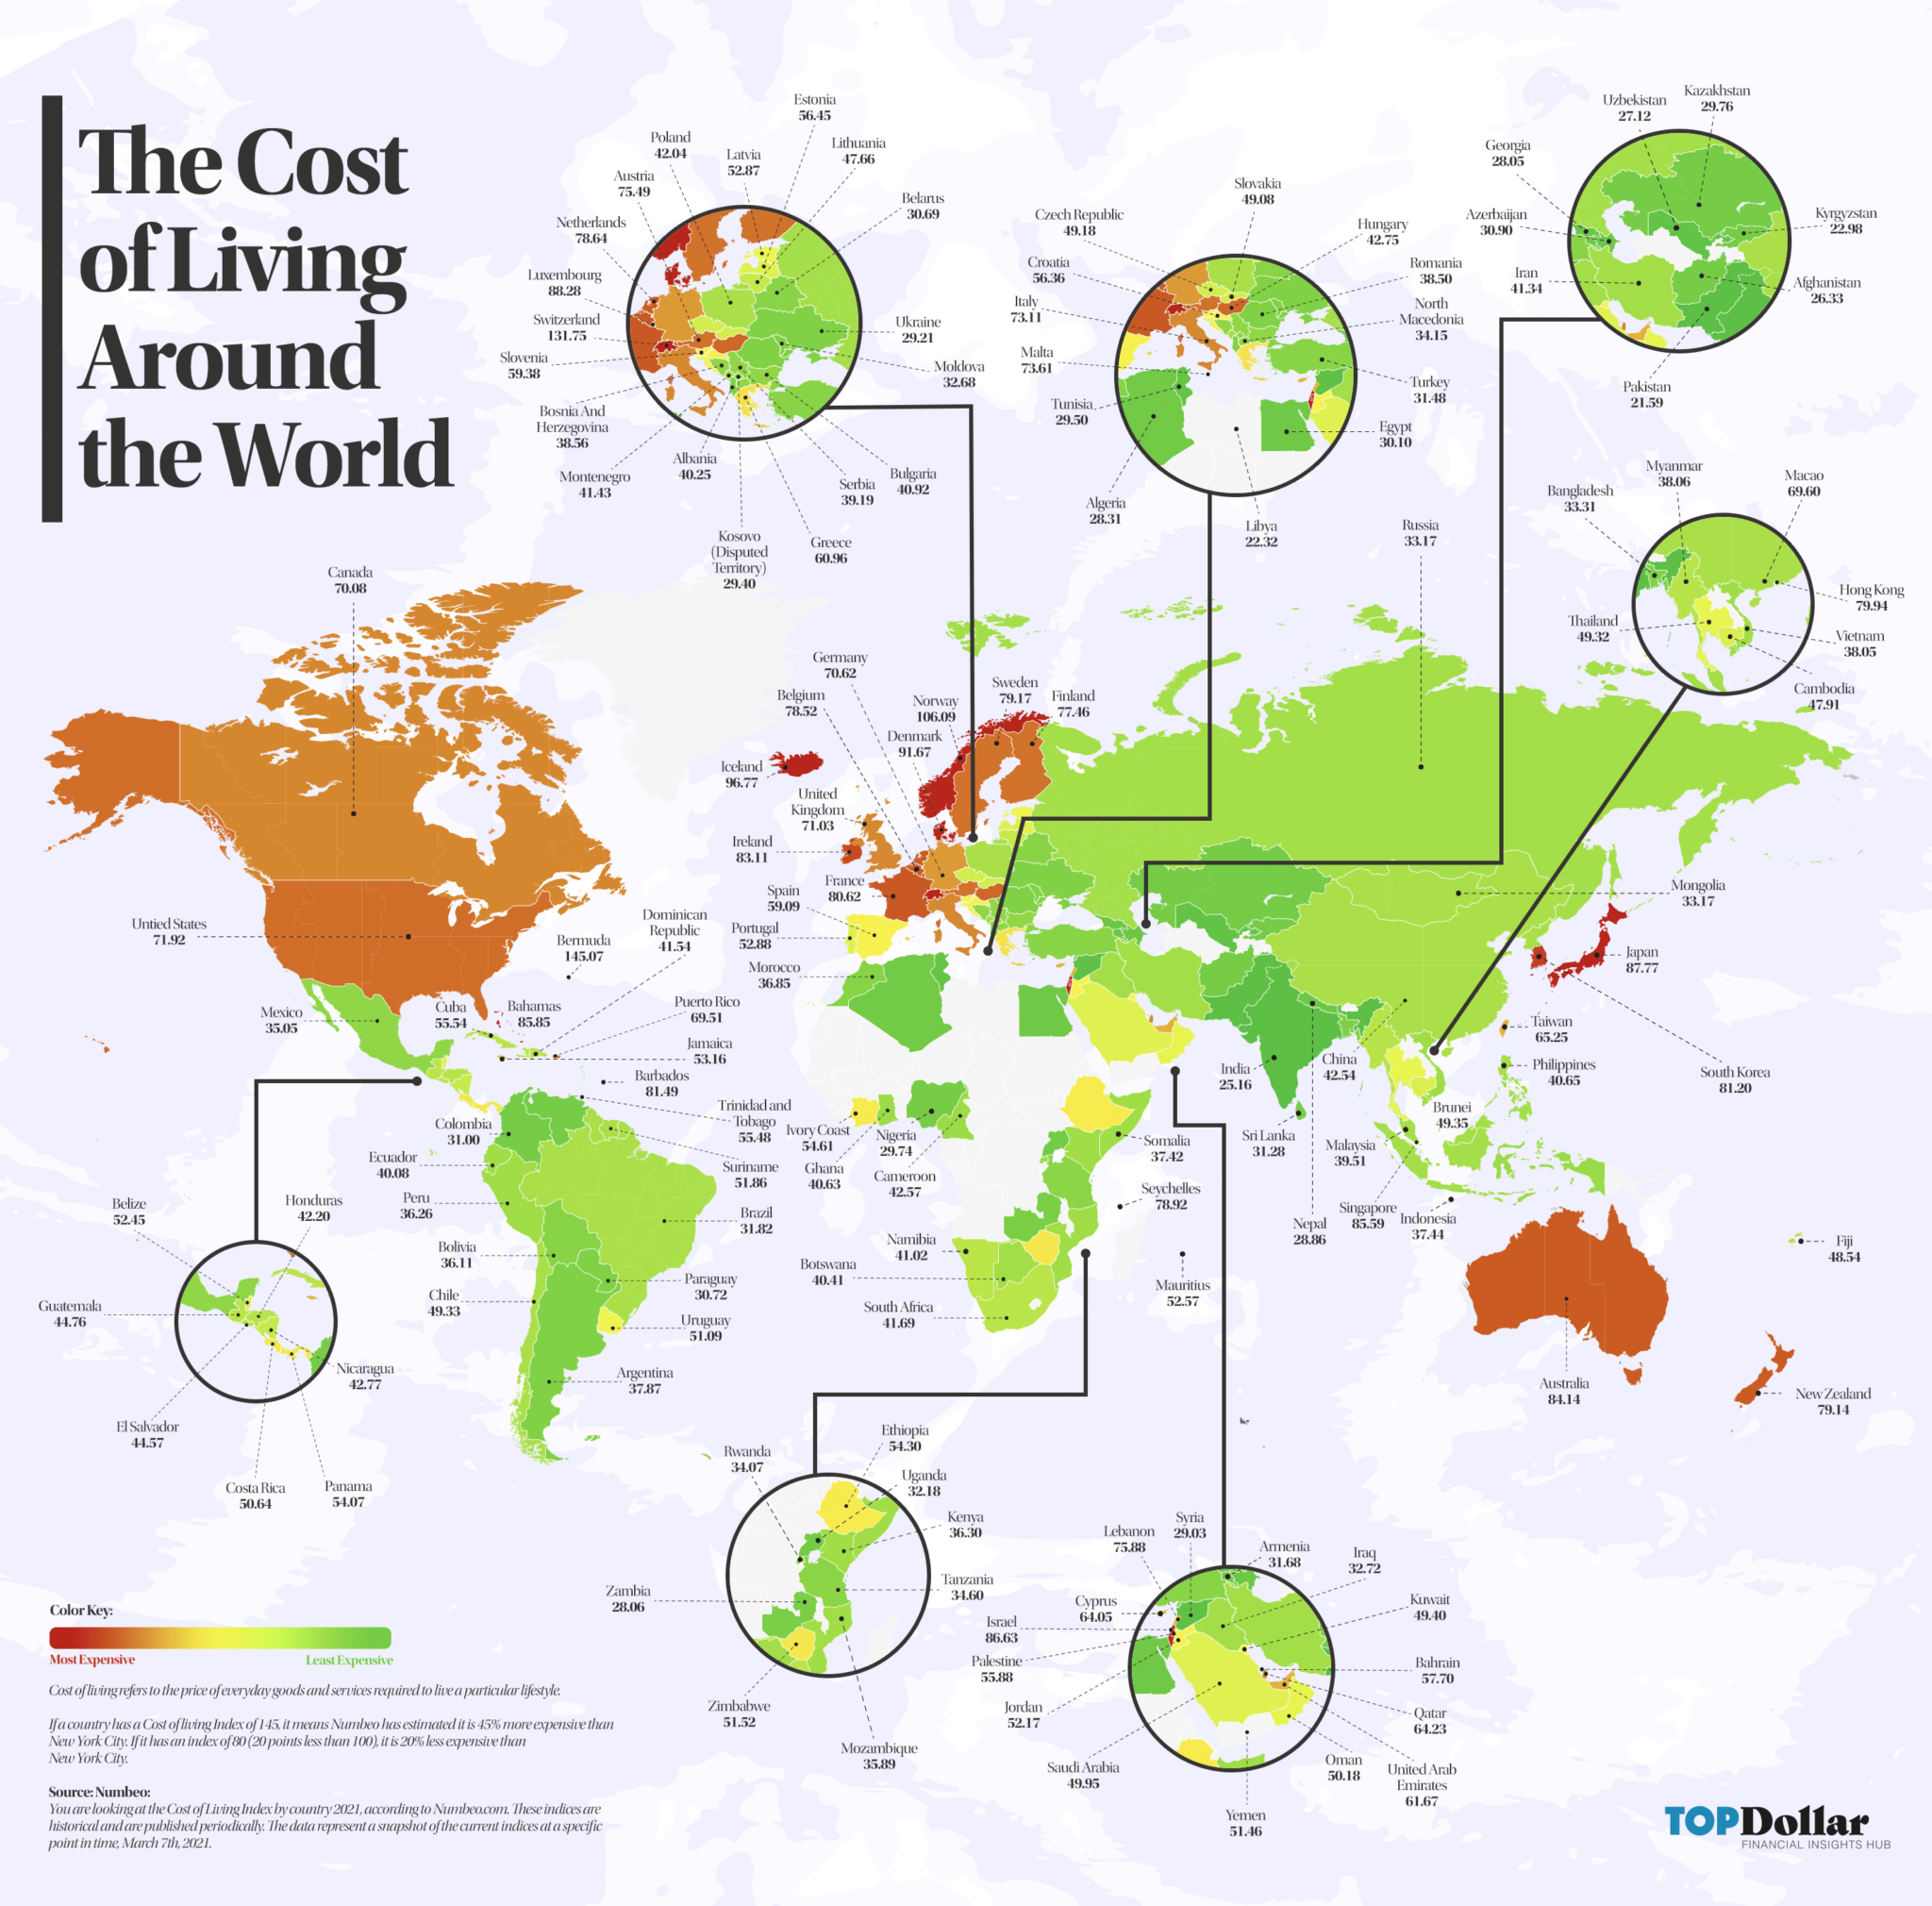 The Cost of Living Around the World Blog